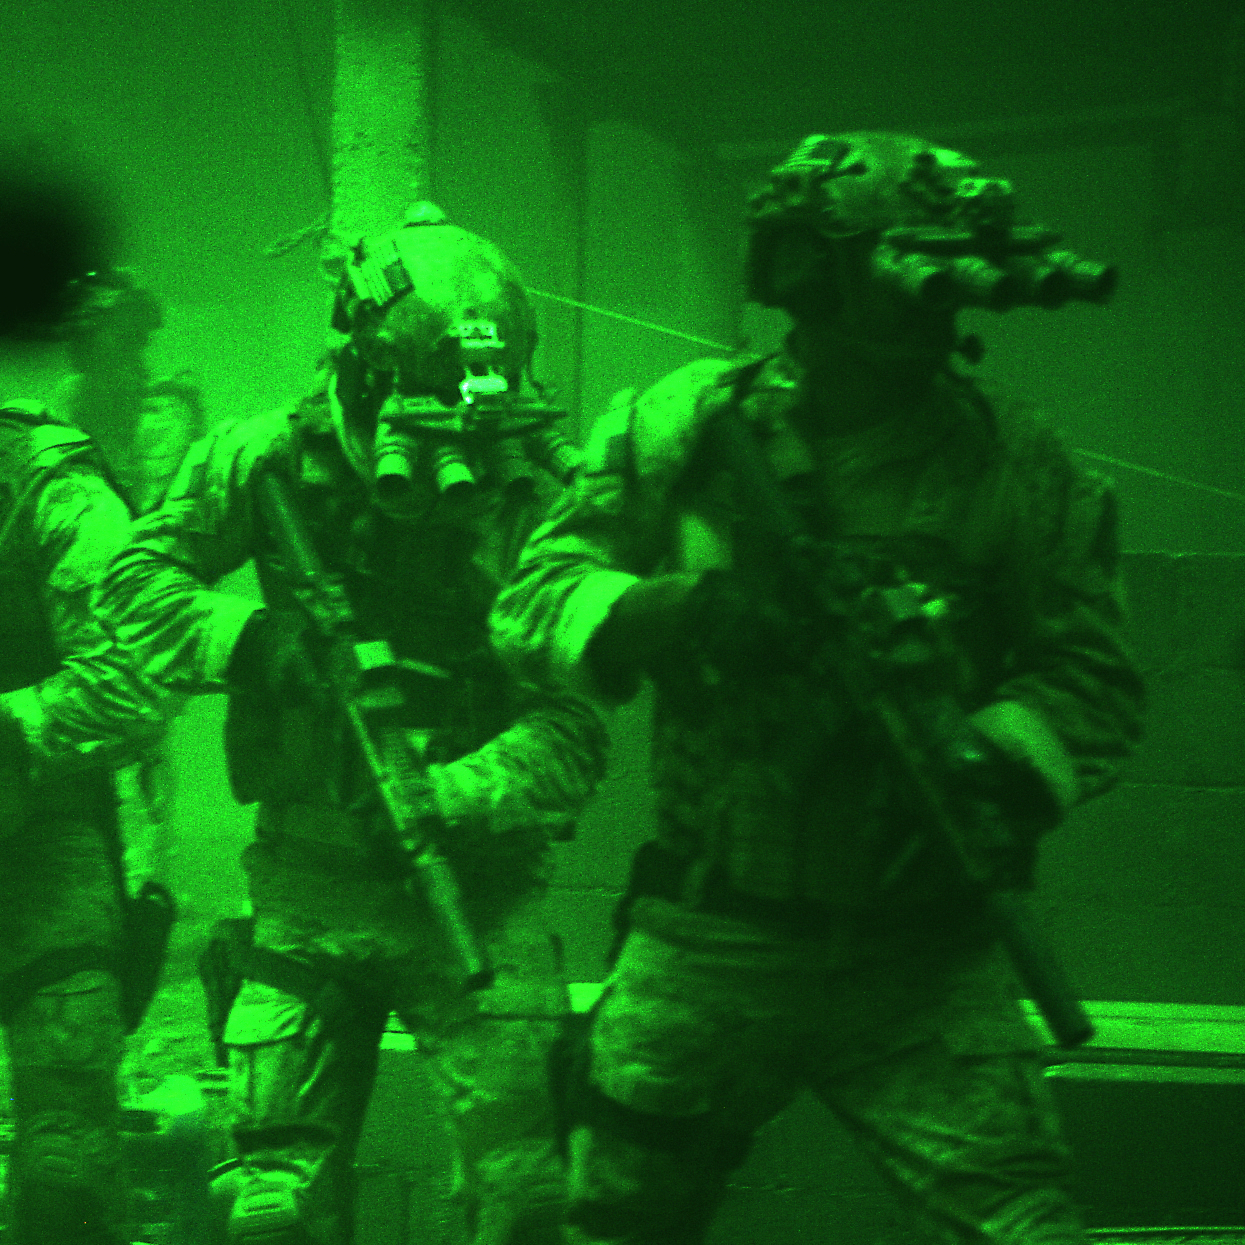 Seen through the greenish glow of night-vision goggles, Navy SEALs prepare to breach a locked door in Osama bin Laden's compound in Zero Dark Thirty.